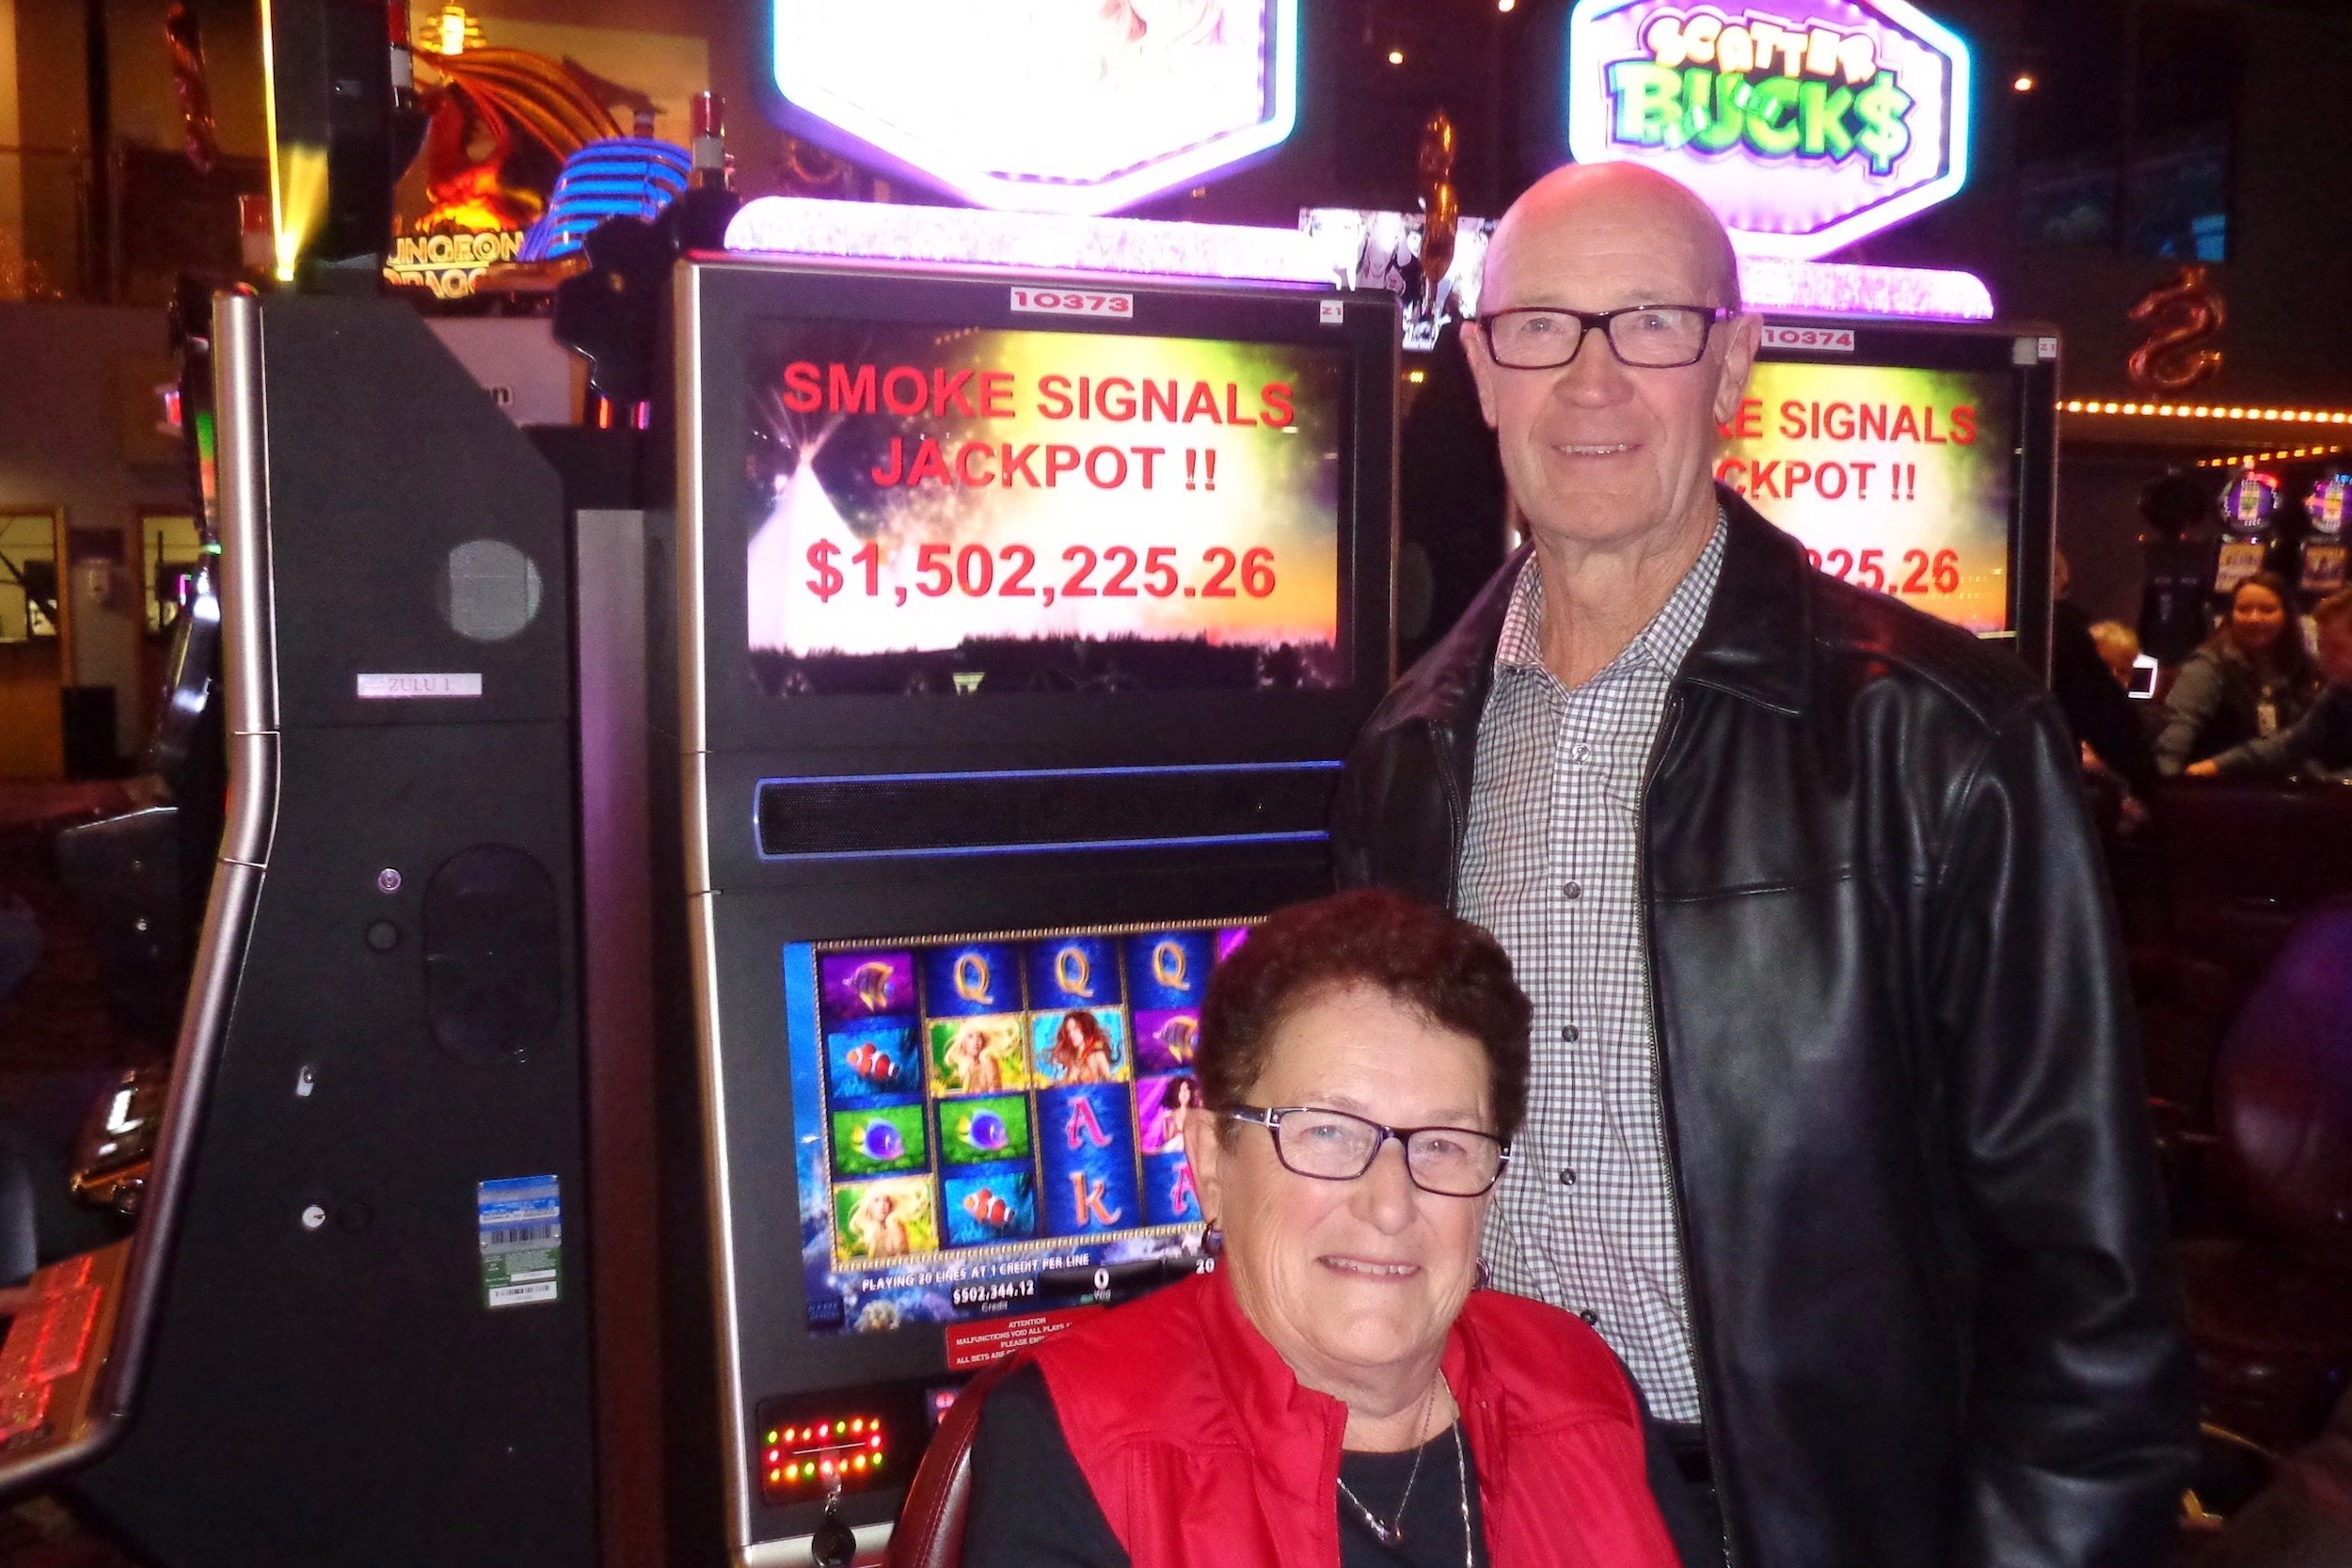 First Nations casino in Saskatchewan pays out $1.5M jackpot